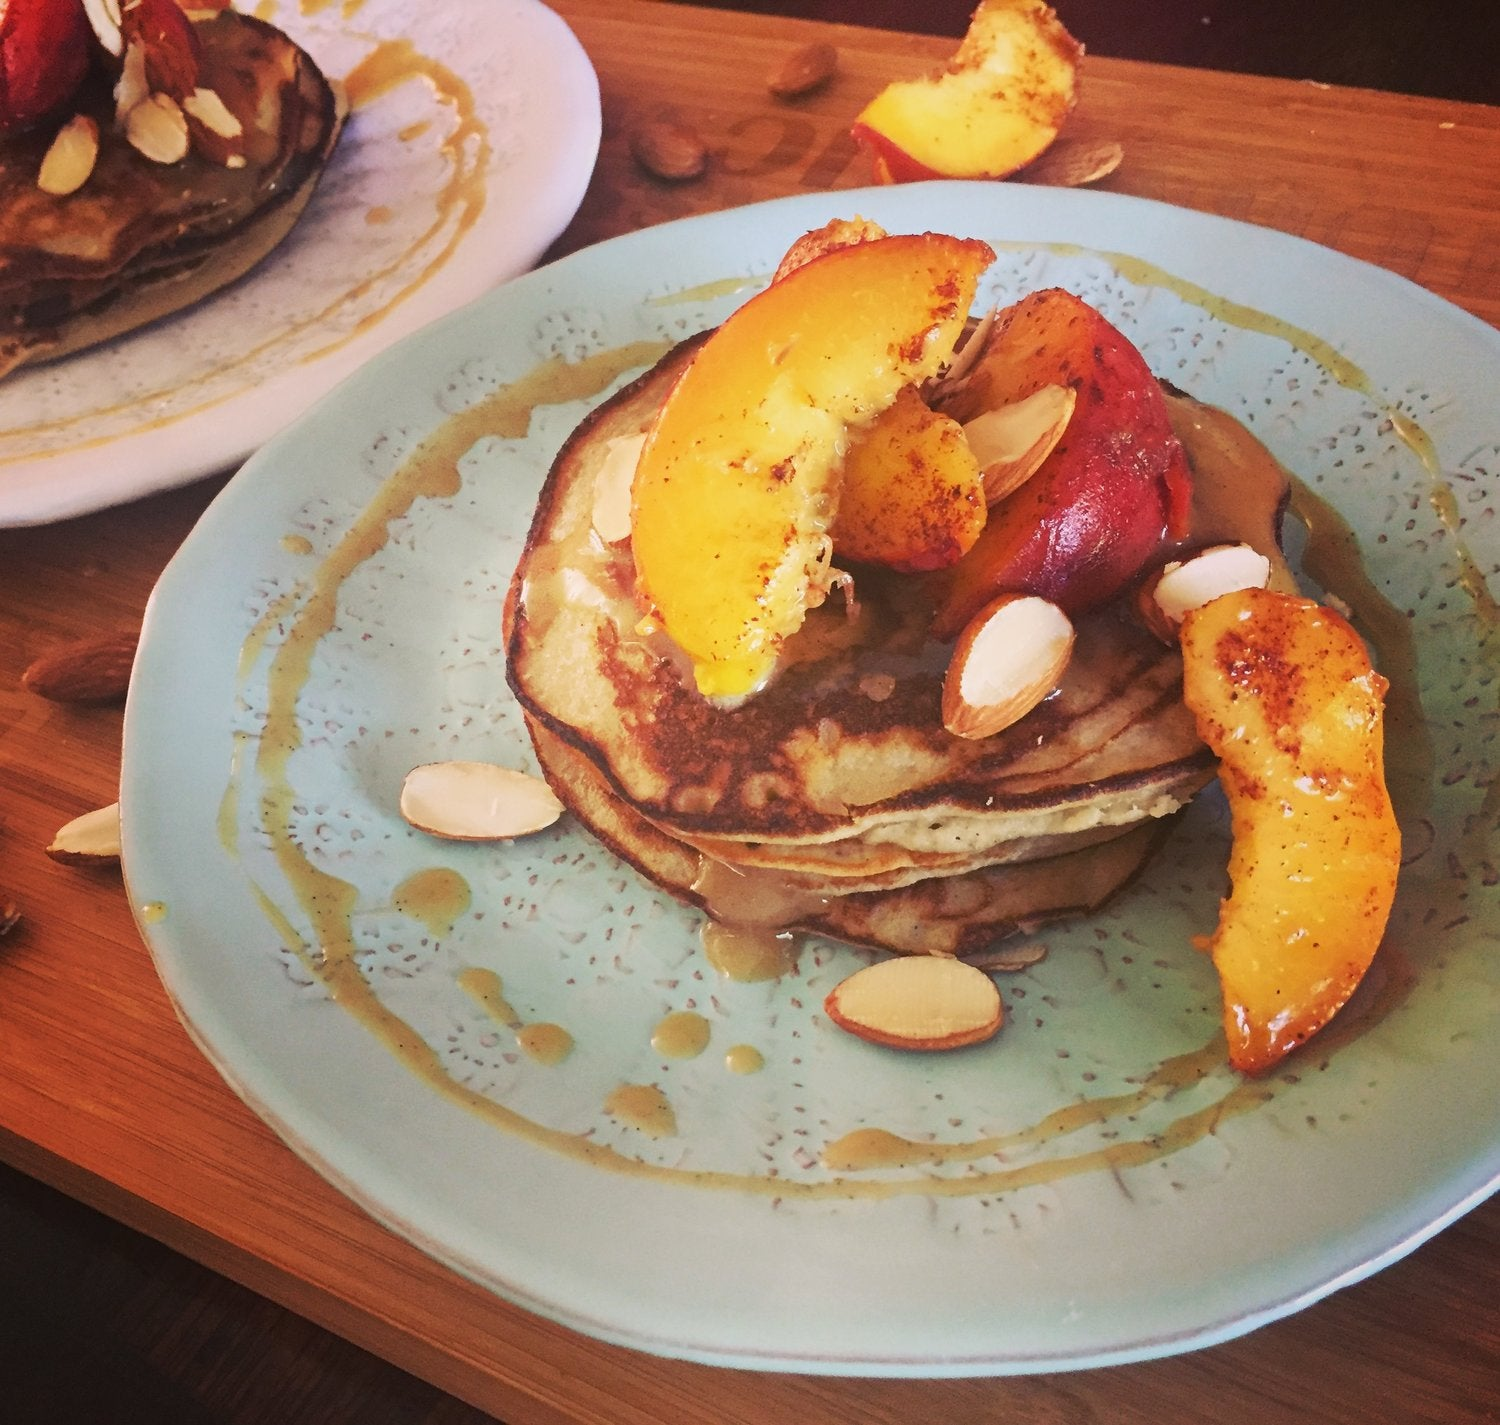 Almond and Banana Pancakes with Grilled Peaches, Maple Tahini and Vanilla Bean Sauce